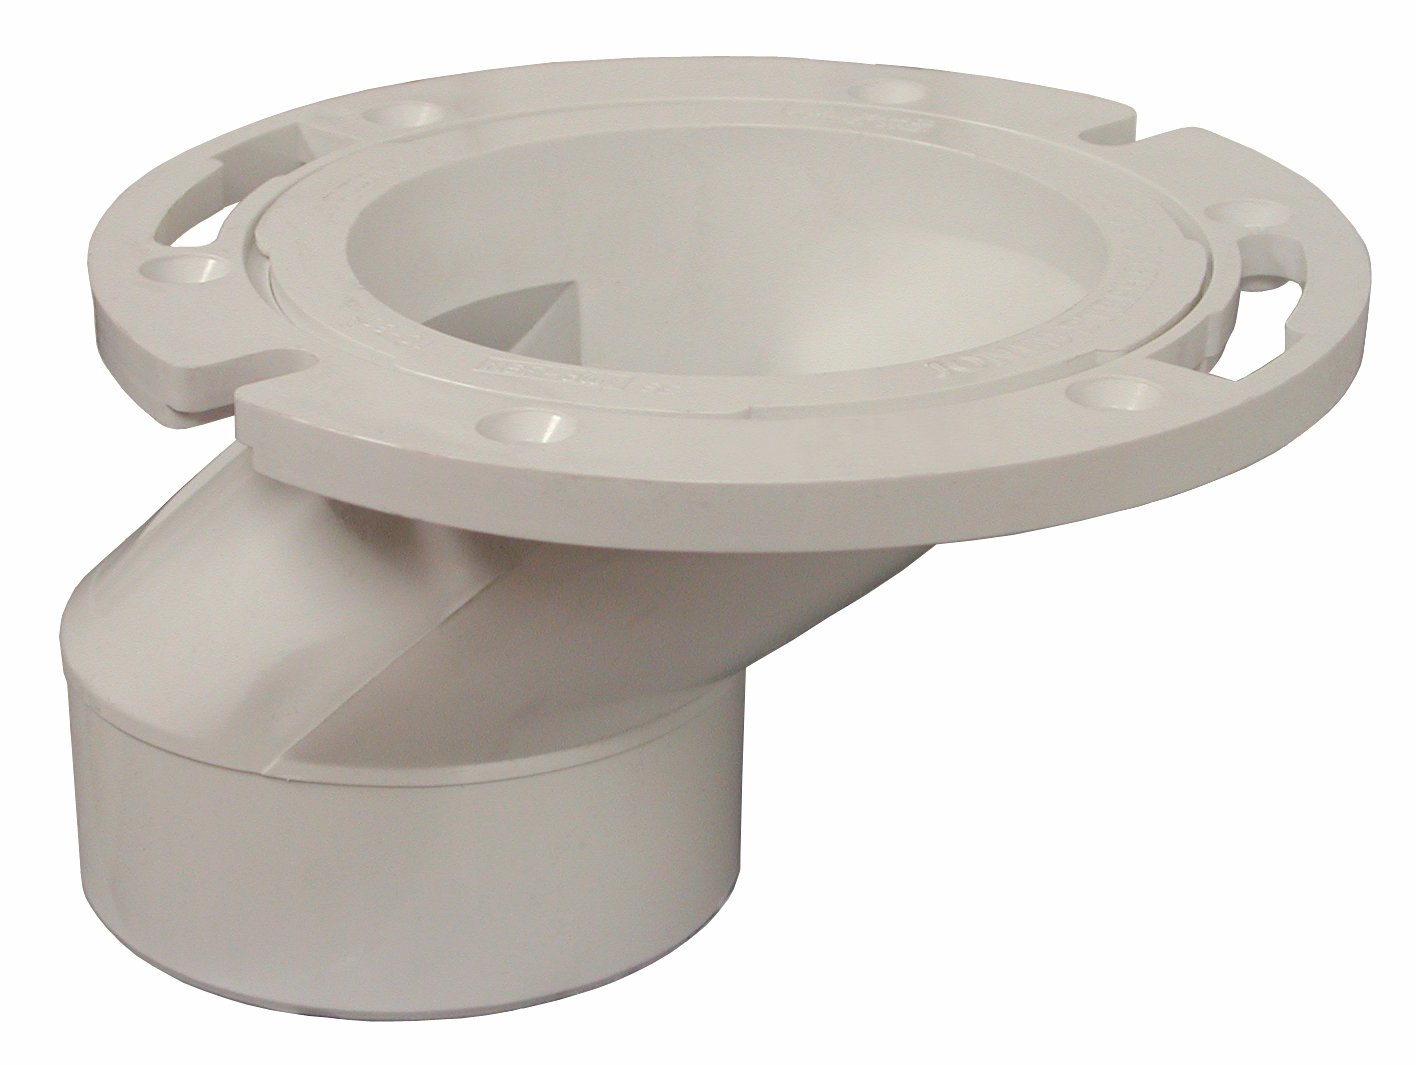 PlumBest C54402 3-Inch by 4-Inch PVC Offset Closet Flange with ...